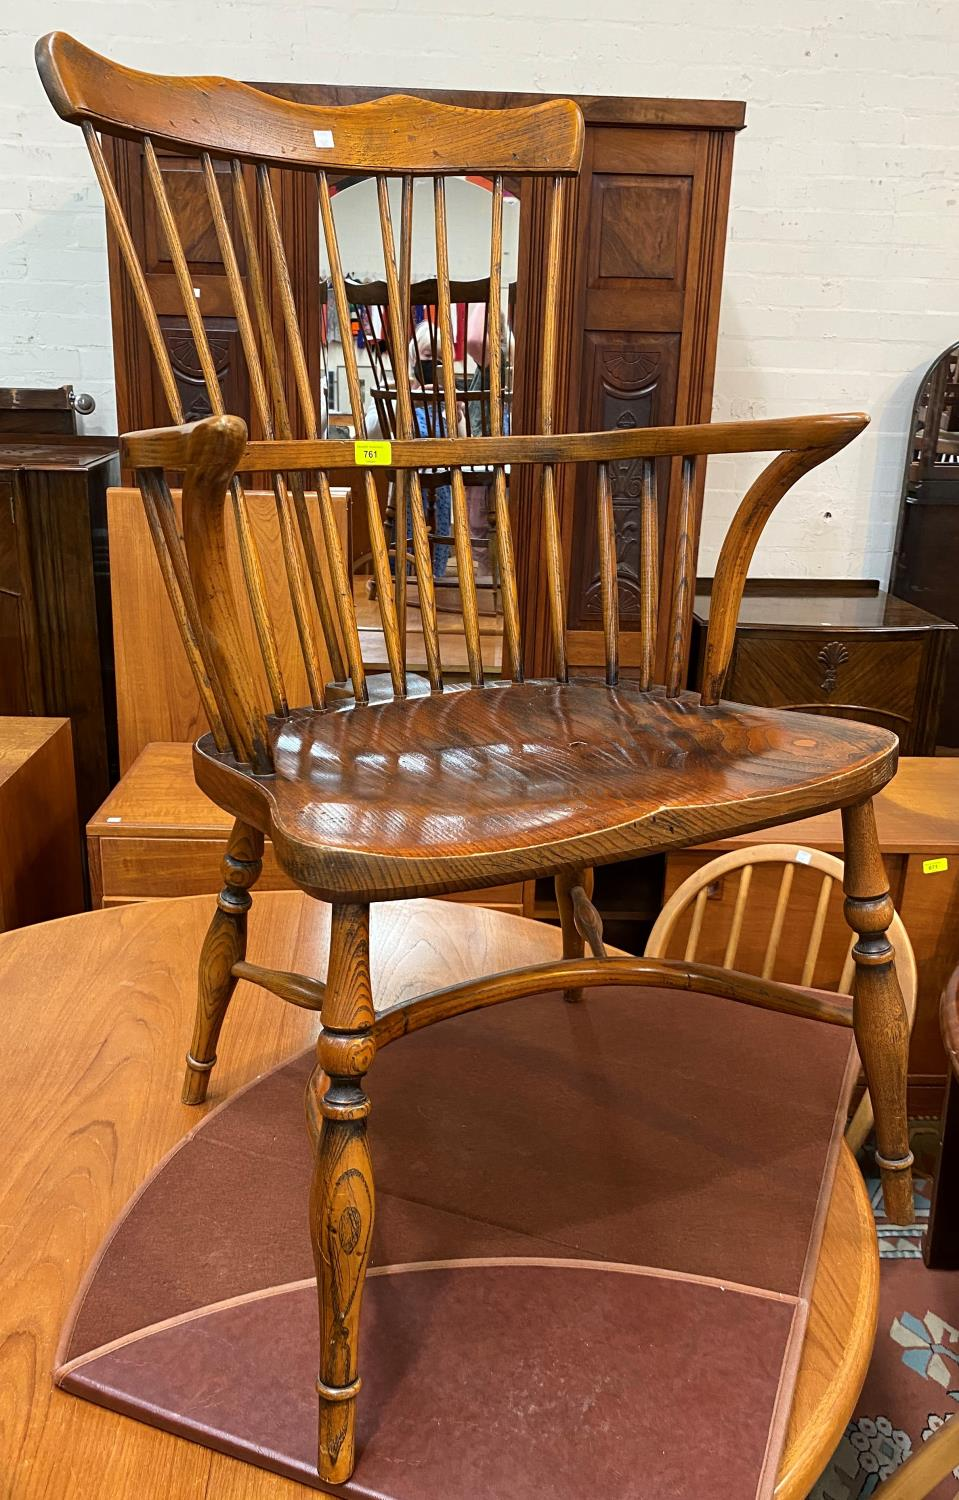 A reproduction distressed oak Windsor armchair with comb back